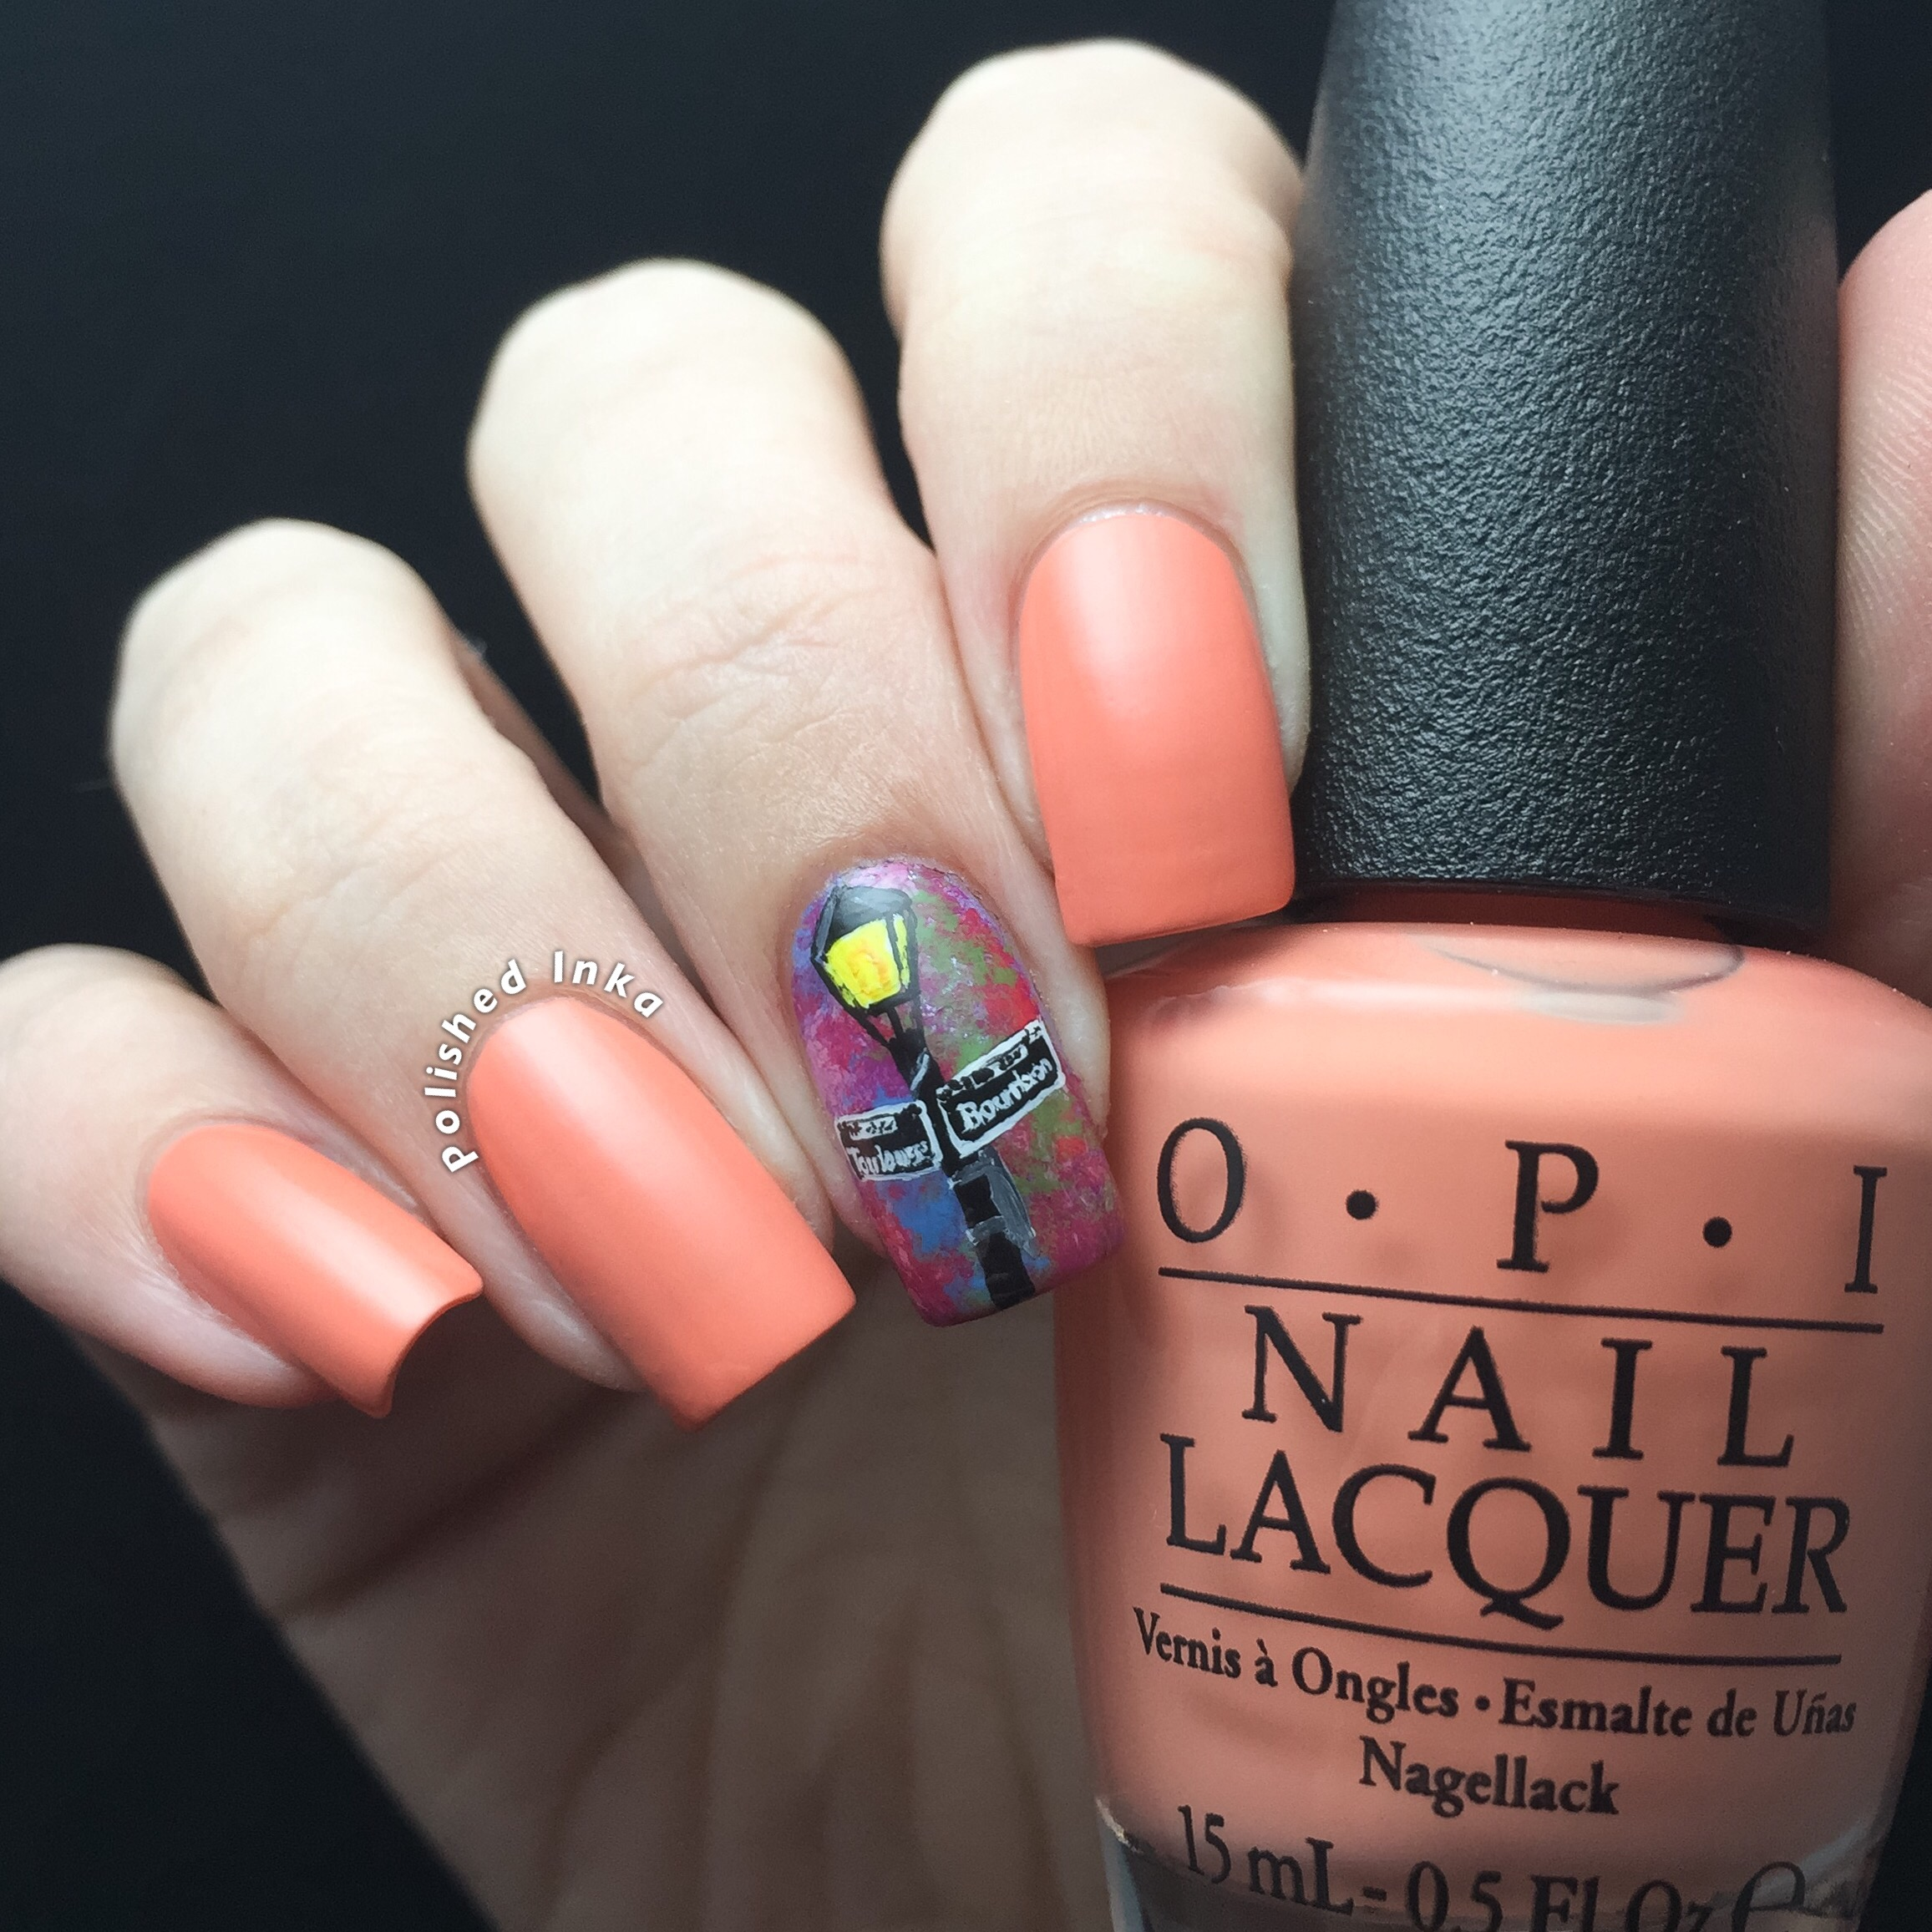 opi new orleans collection 2016 crawfishin' for a compliment swatch